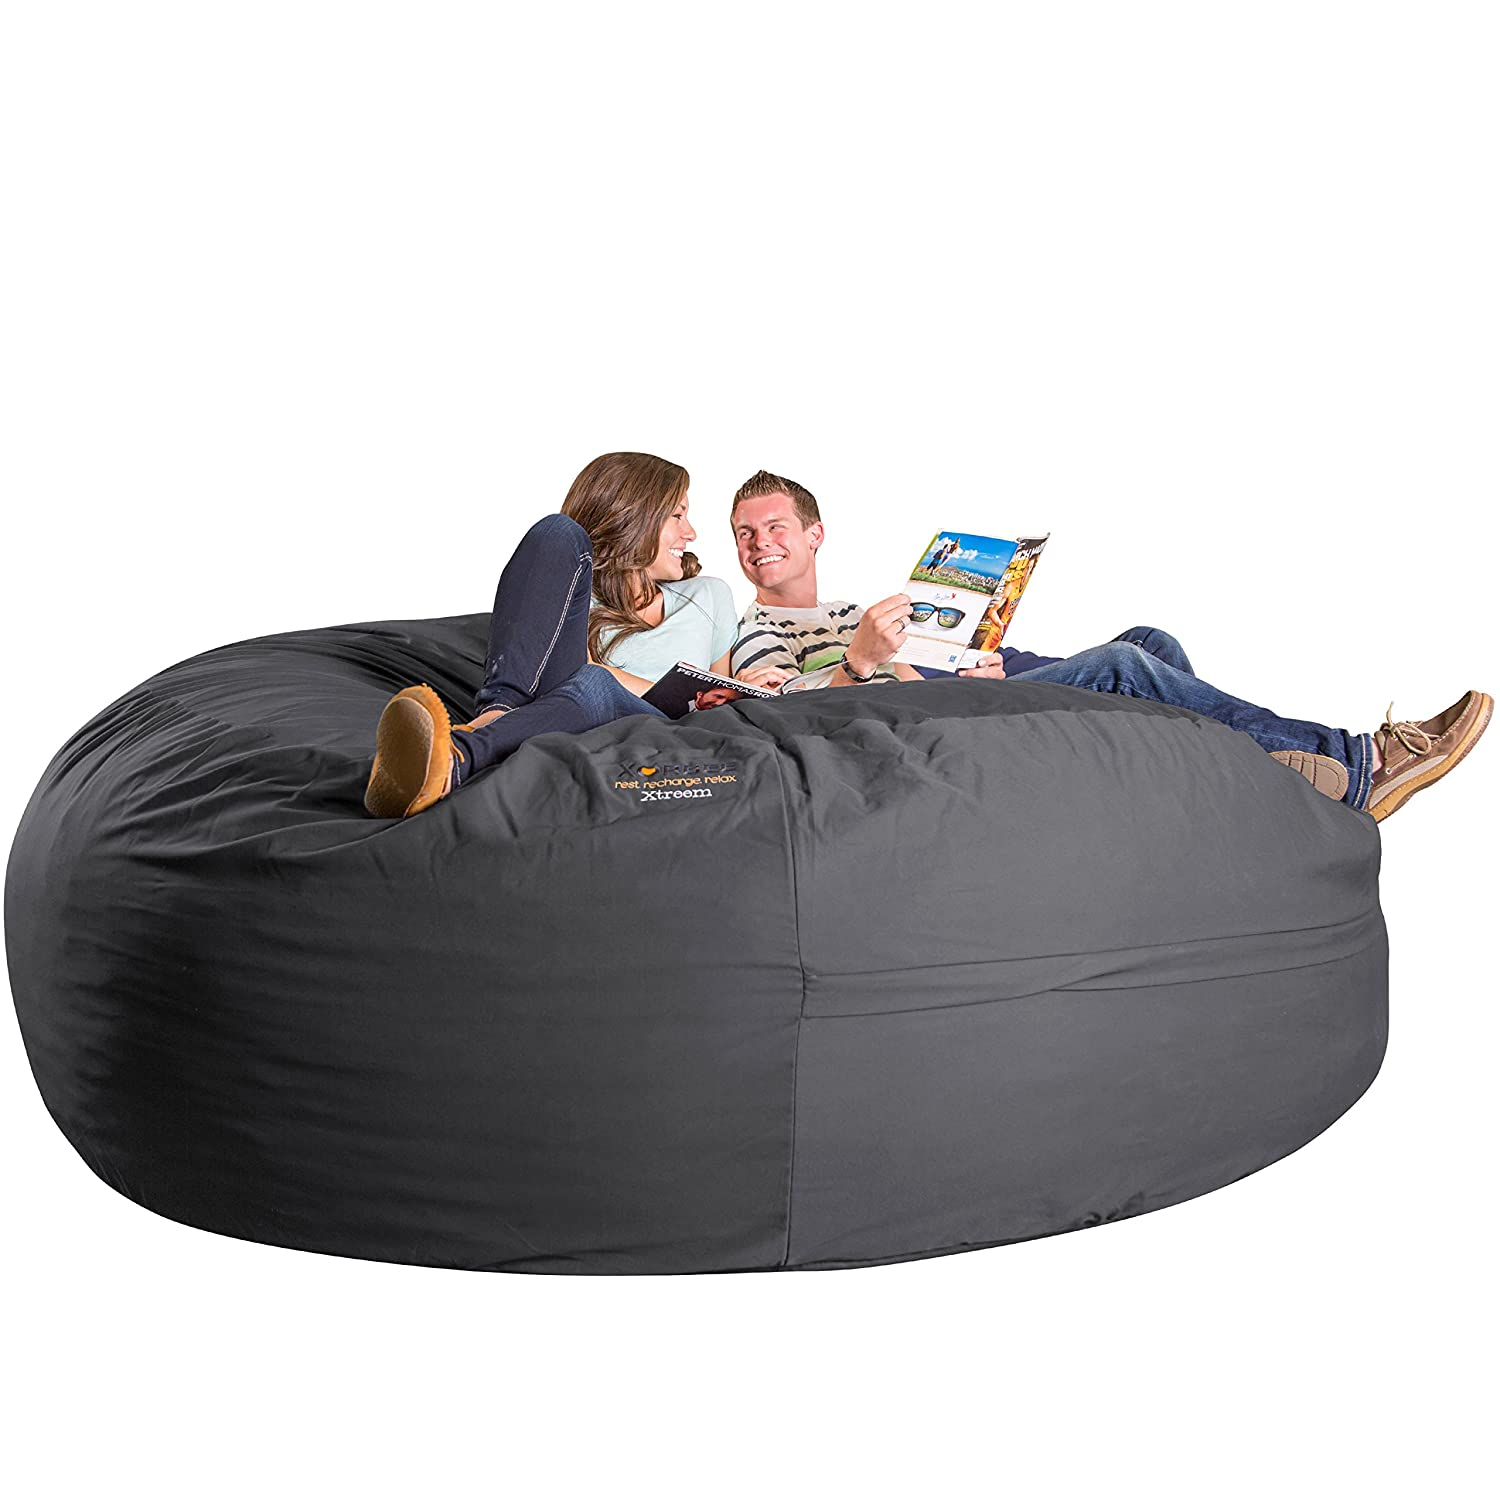 Amazon.com: xorbee 8-foot xtreem foam-filled Puf: Kitchen ...